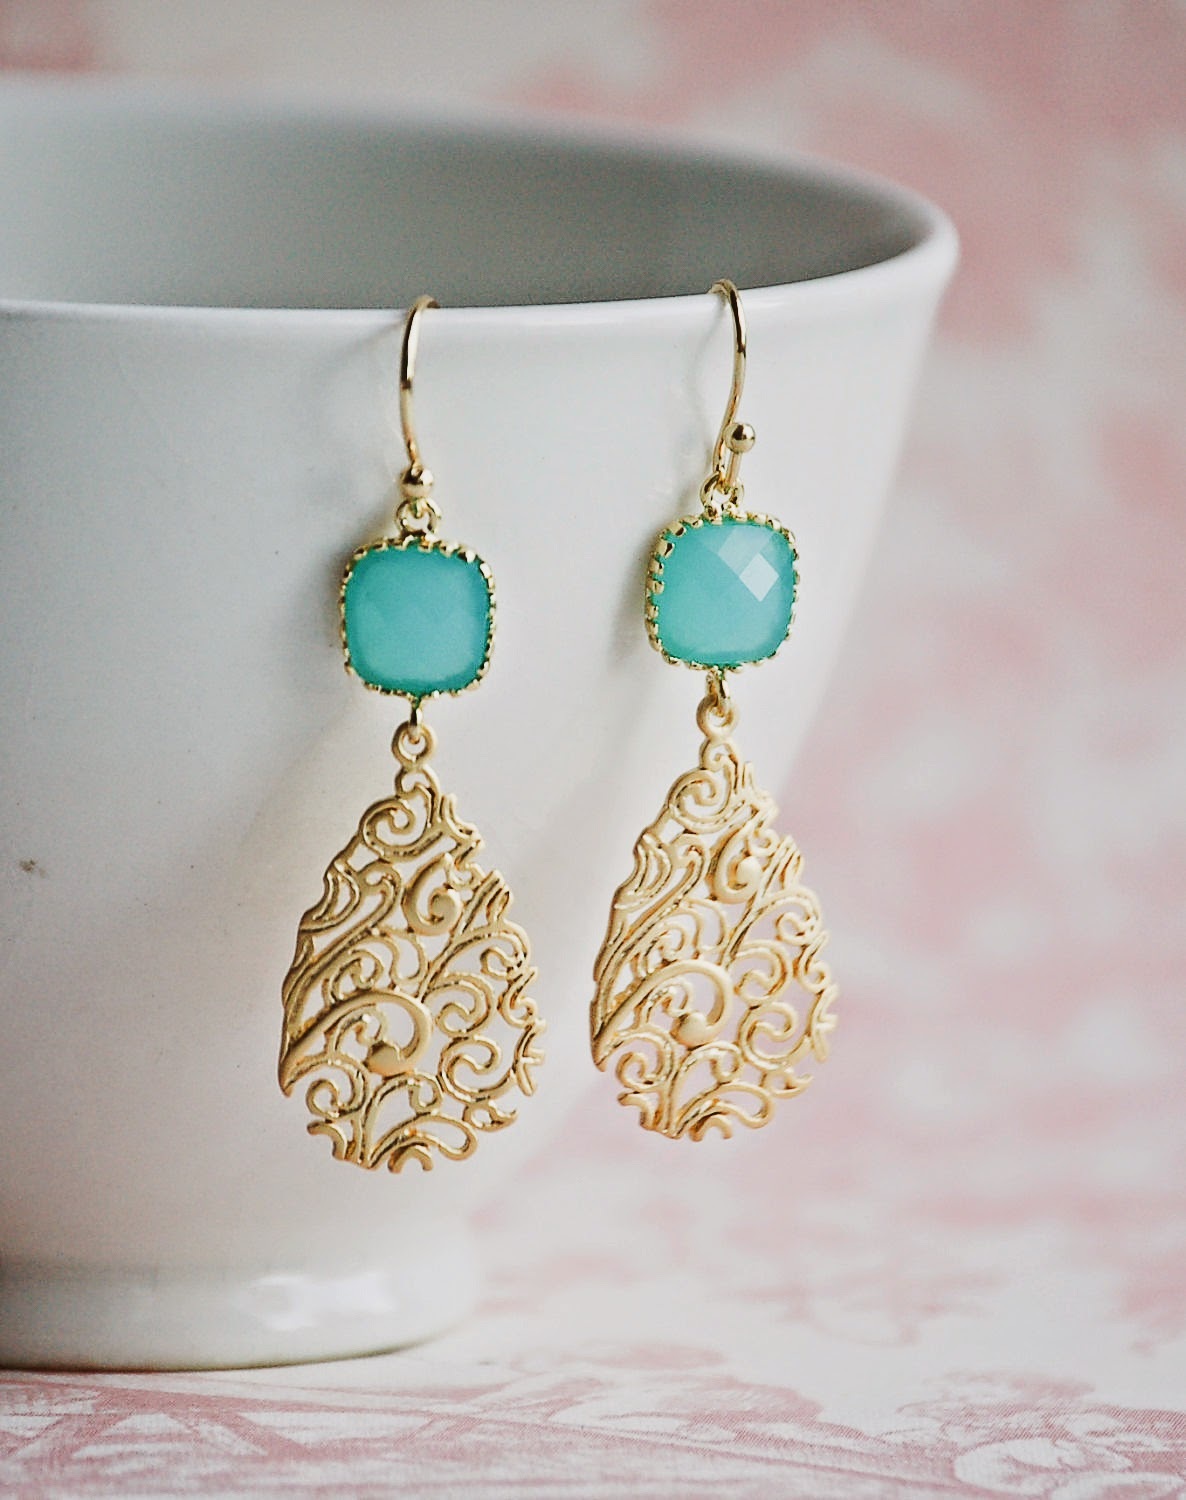 https://www.etsy.com/listing/198082081/aqua-opal-stone-gold-lace-earrings?ref=shop_home_active_1&ga_search_query=opal%2Bearring